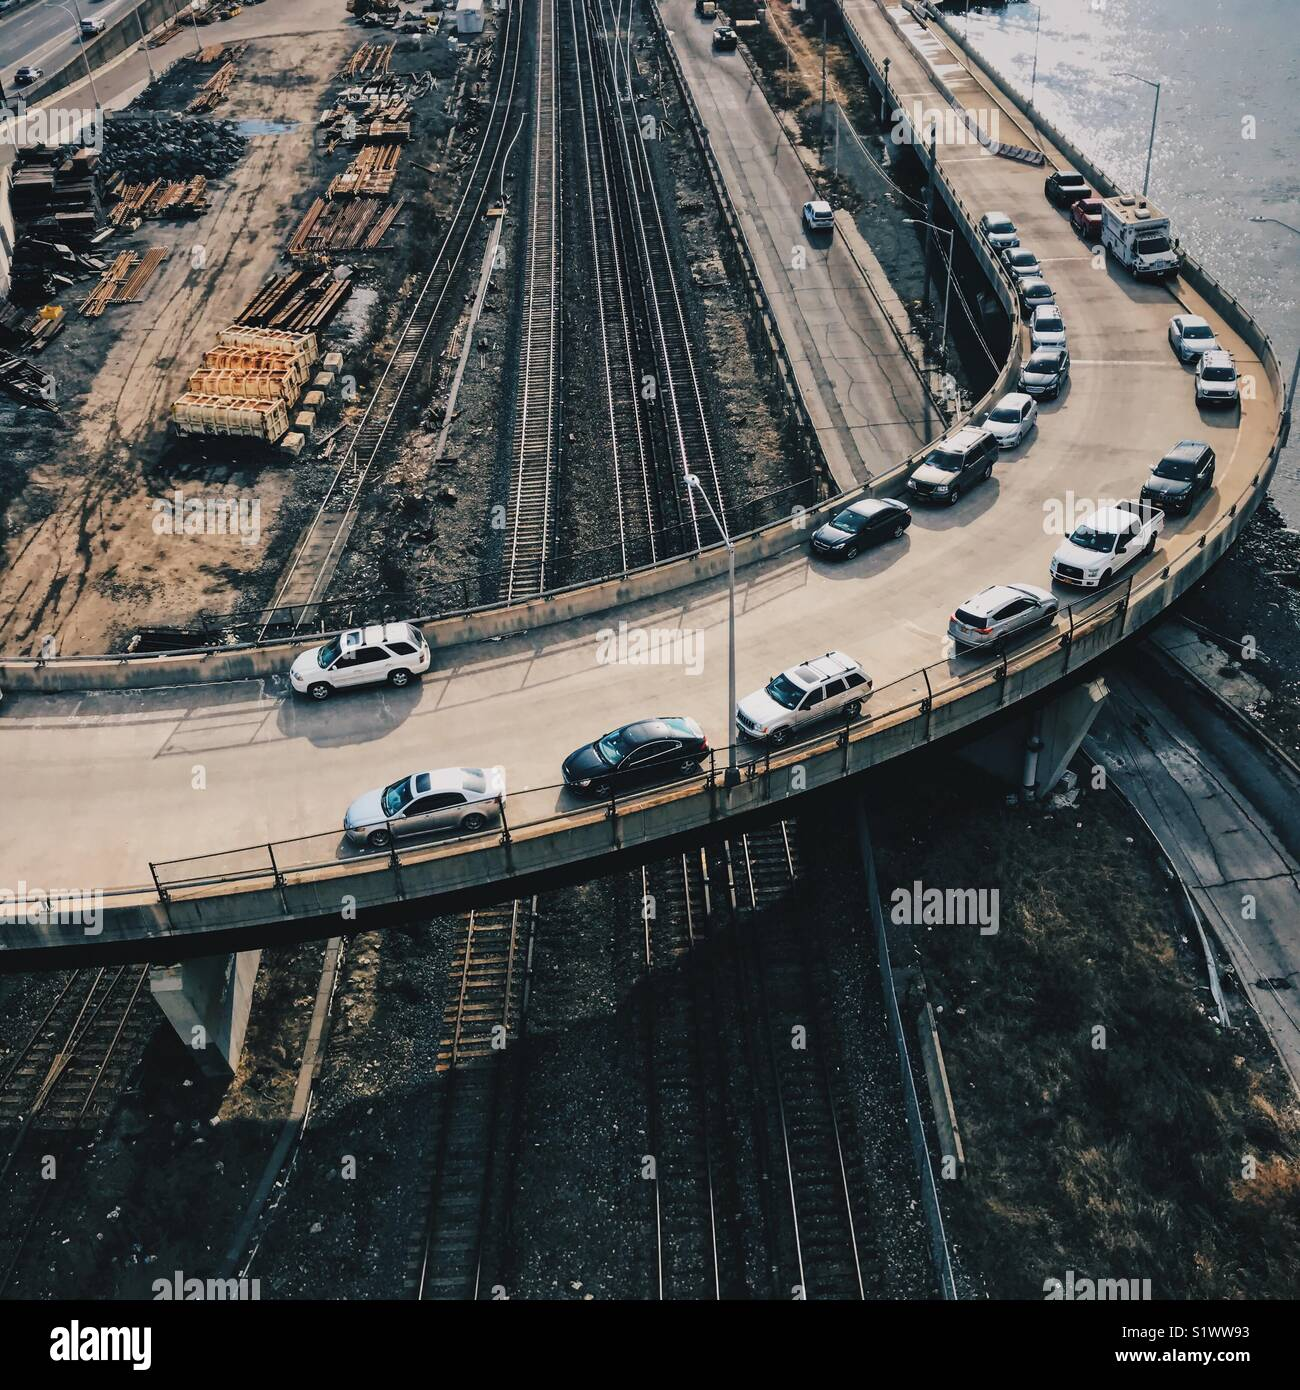 Cars parked on a curve over train tracks. - Stock Image